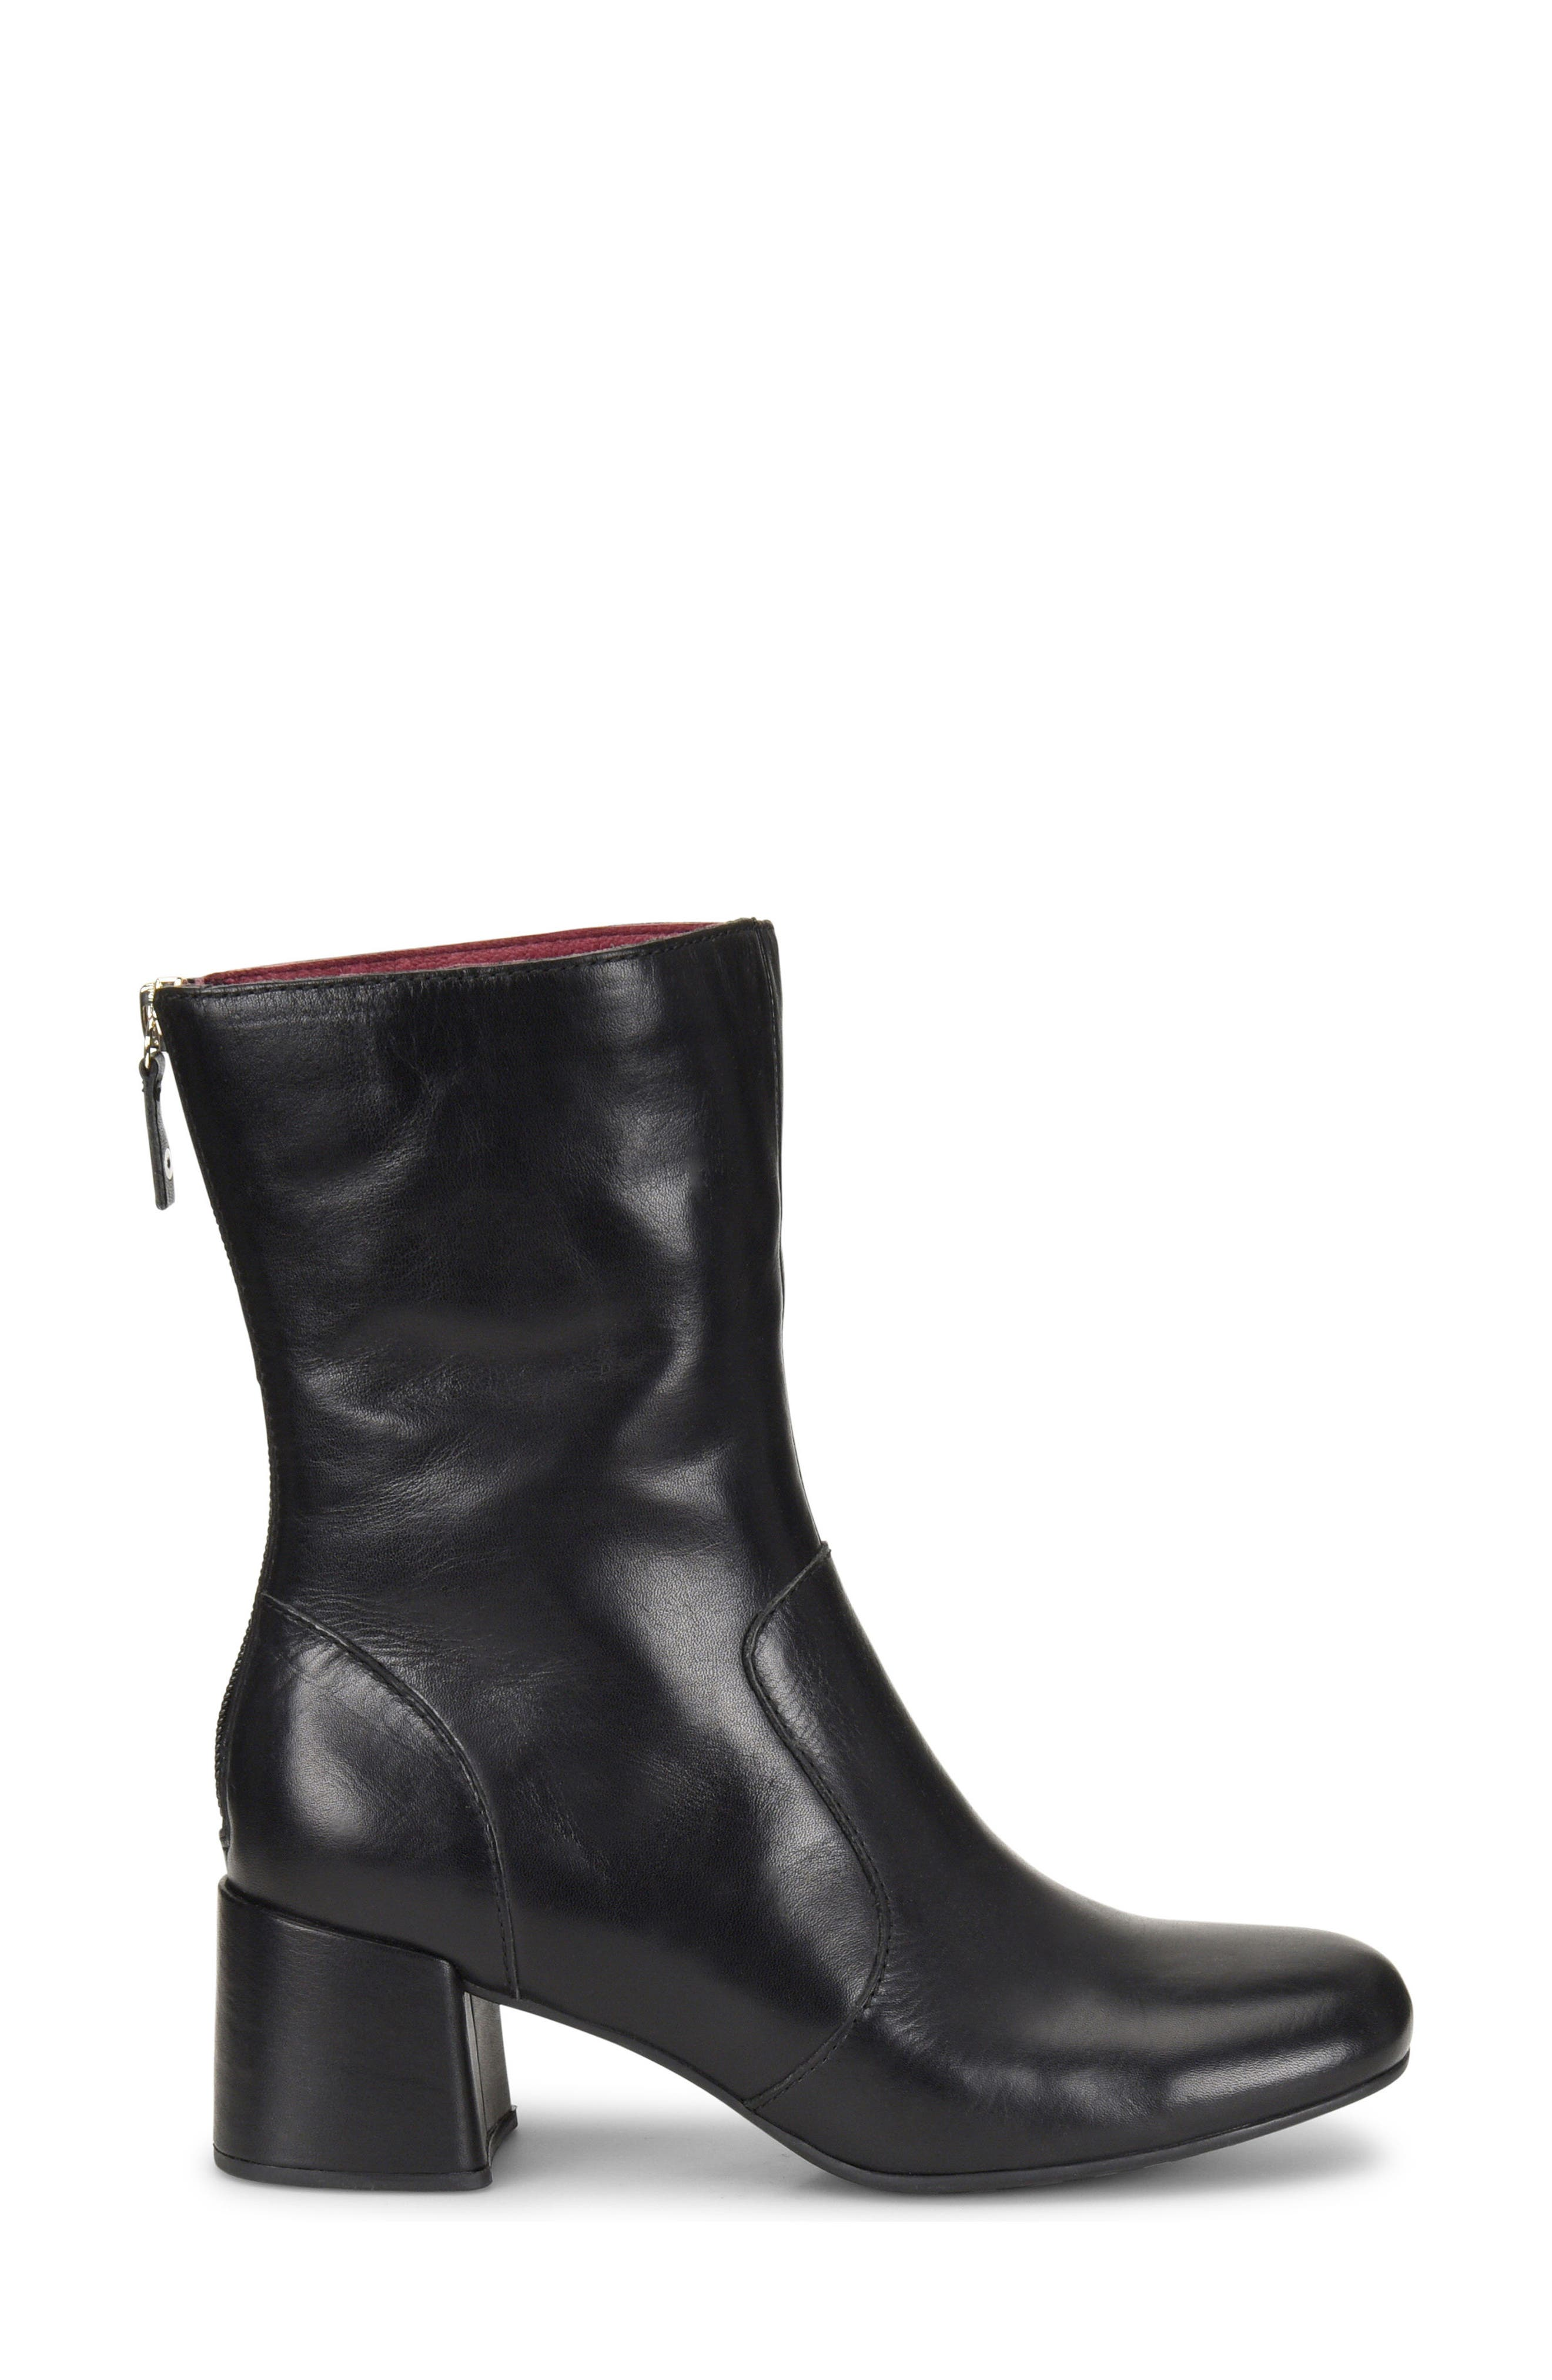 Florence Bootie,                             Alternate thumbnail 3, color,                             Black Leather